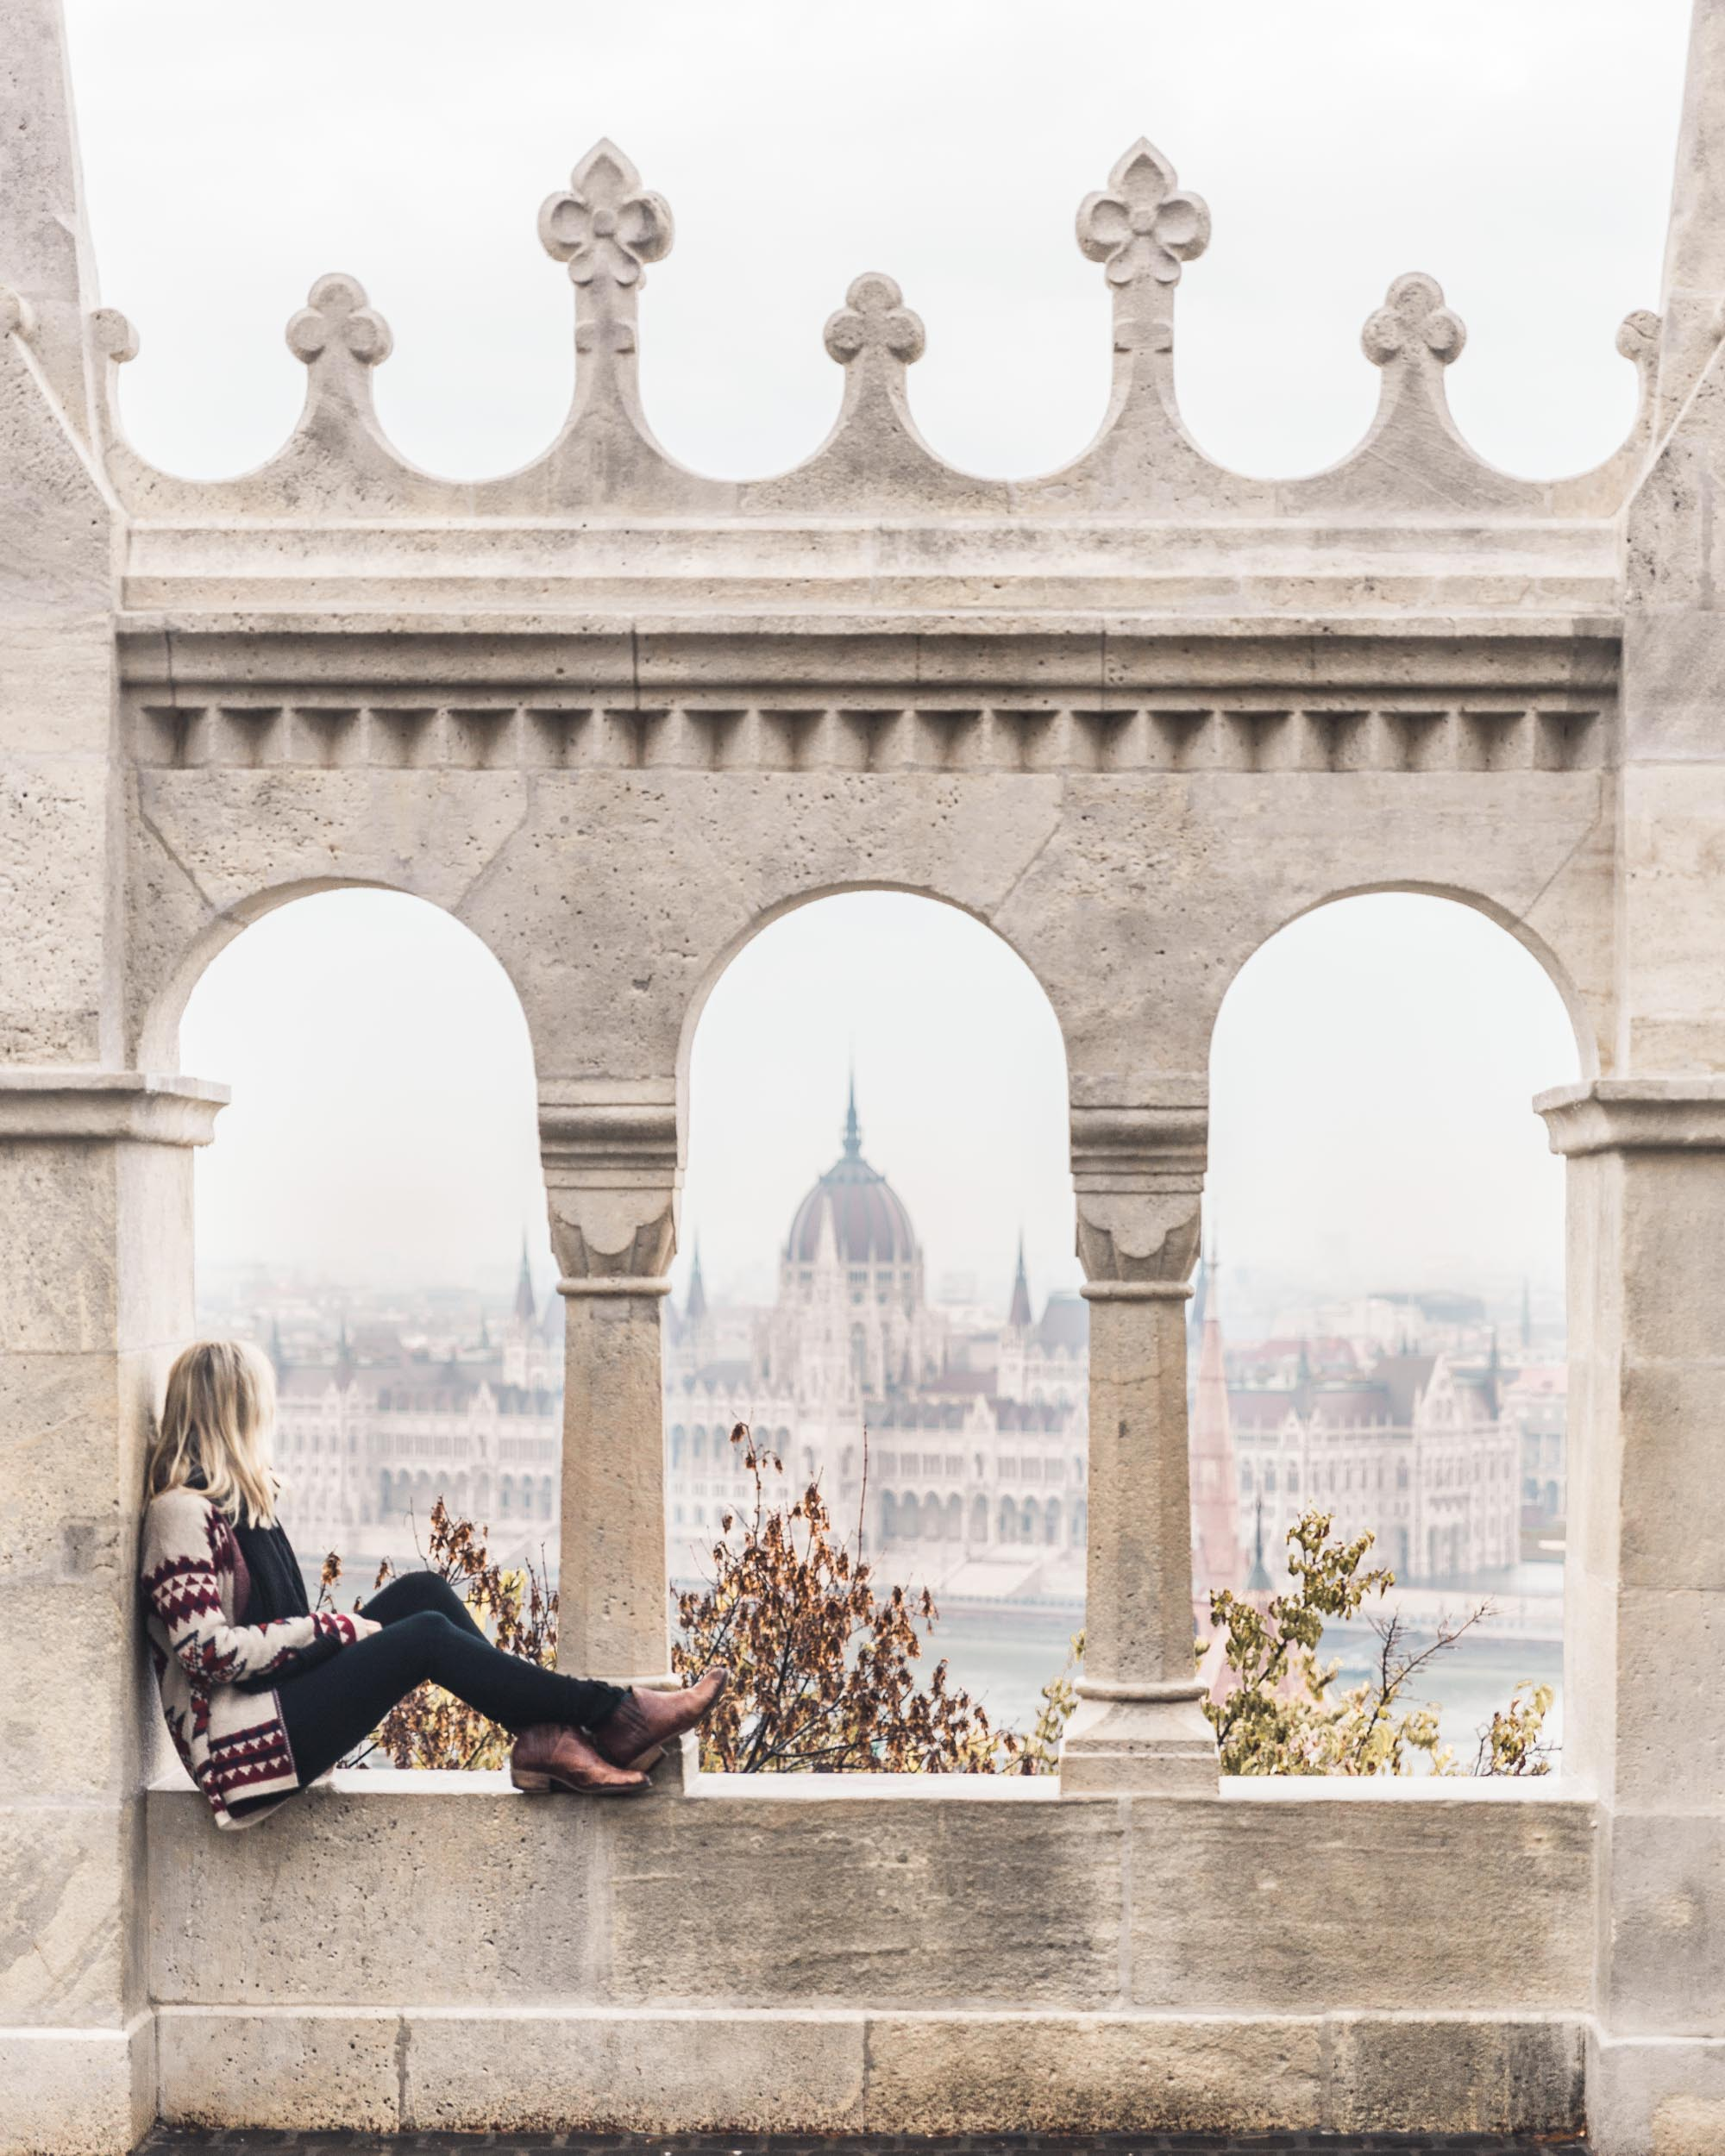 Fisherman's bastion overlooking the parliament building in Budapest, Hungary